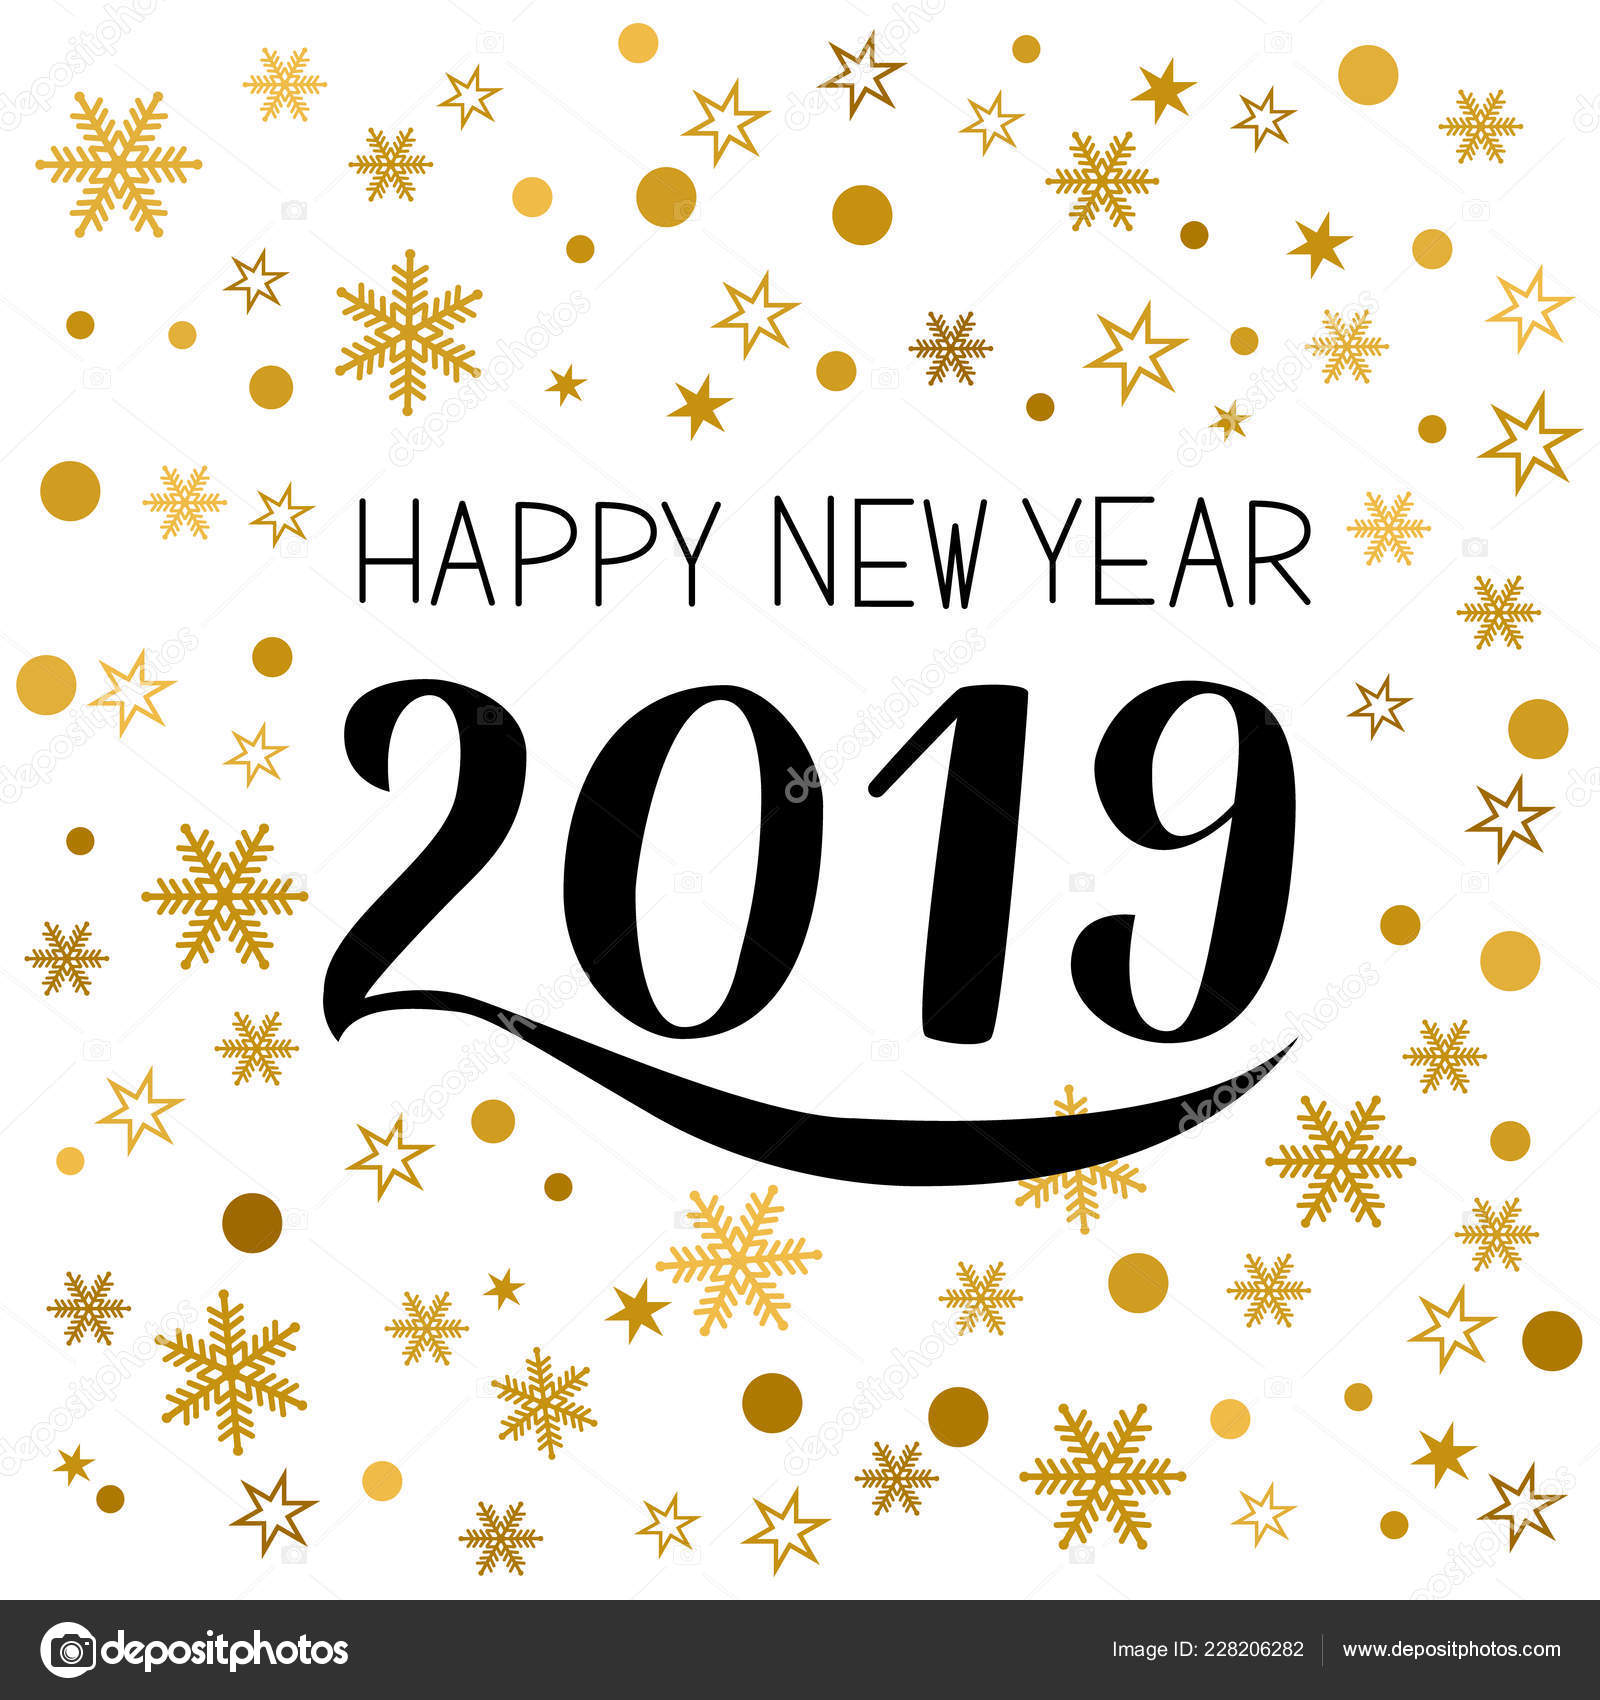 happy new year greeting card hand written numbers 2019 gold holidays pattern with snowflakes and dots typography poster easy to edit vector template for